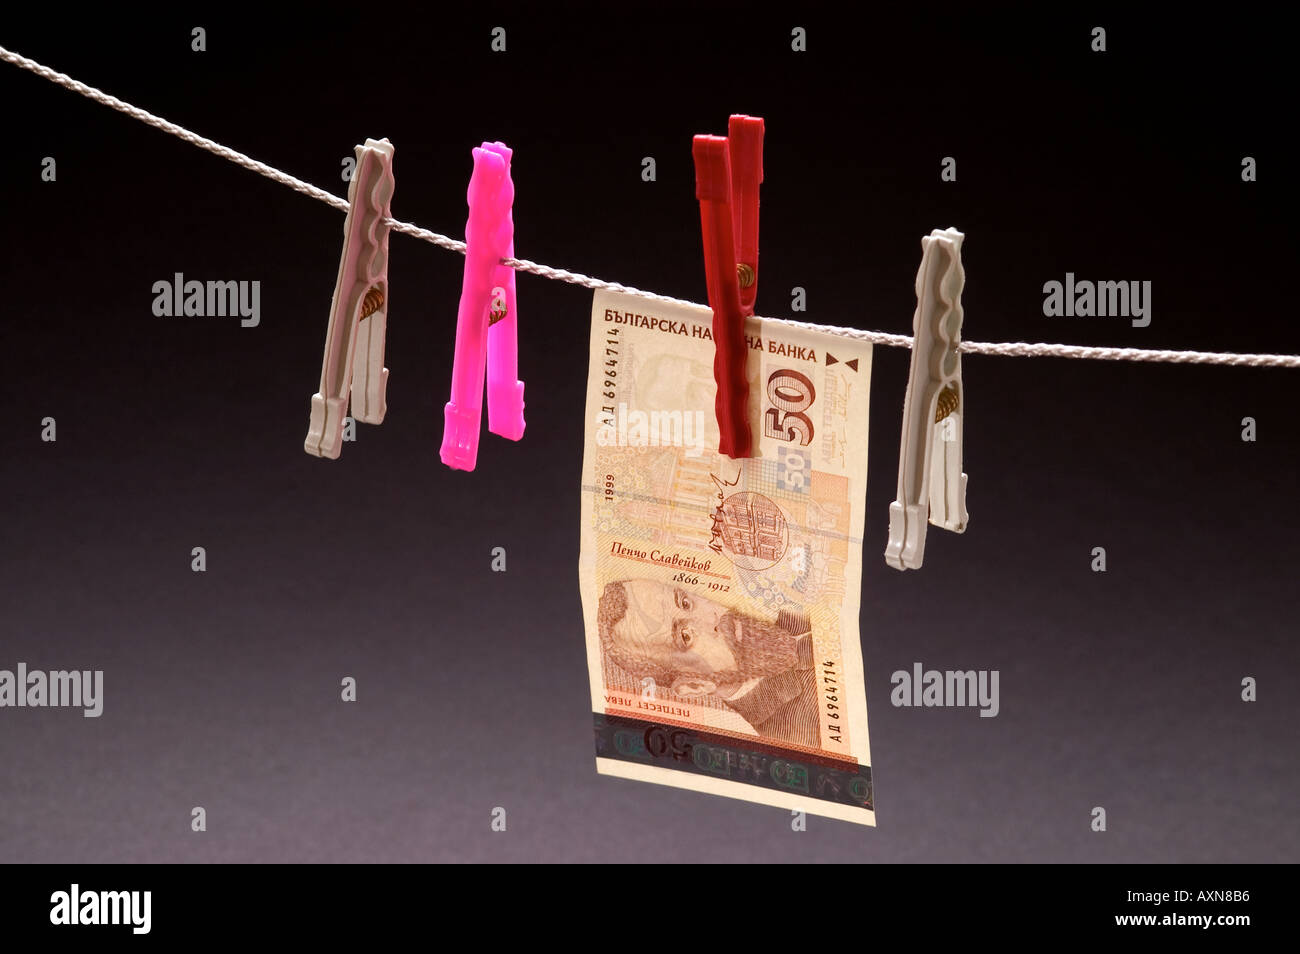 Washed money hanged on a rope currency pegs bgn 50 leva euro note washed money hanged on a rope currency pegs bgn 50 leva euro note dirty money drying biocorpaavc